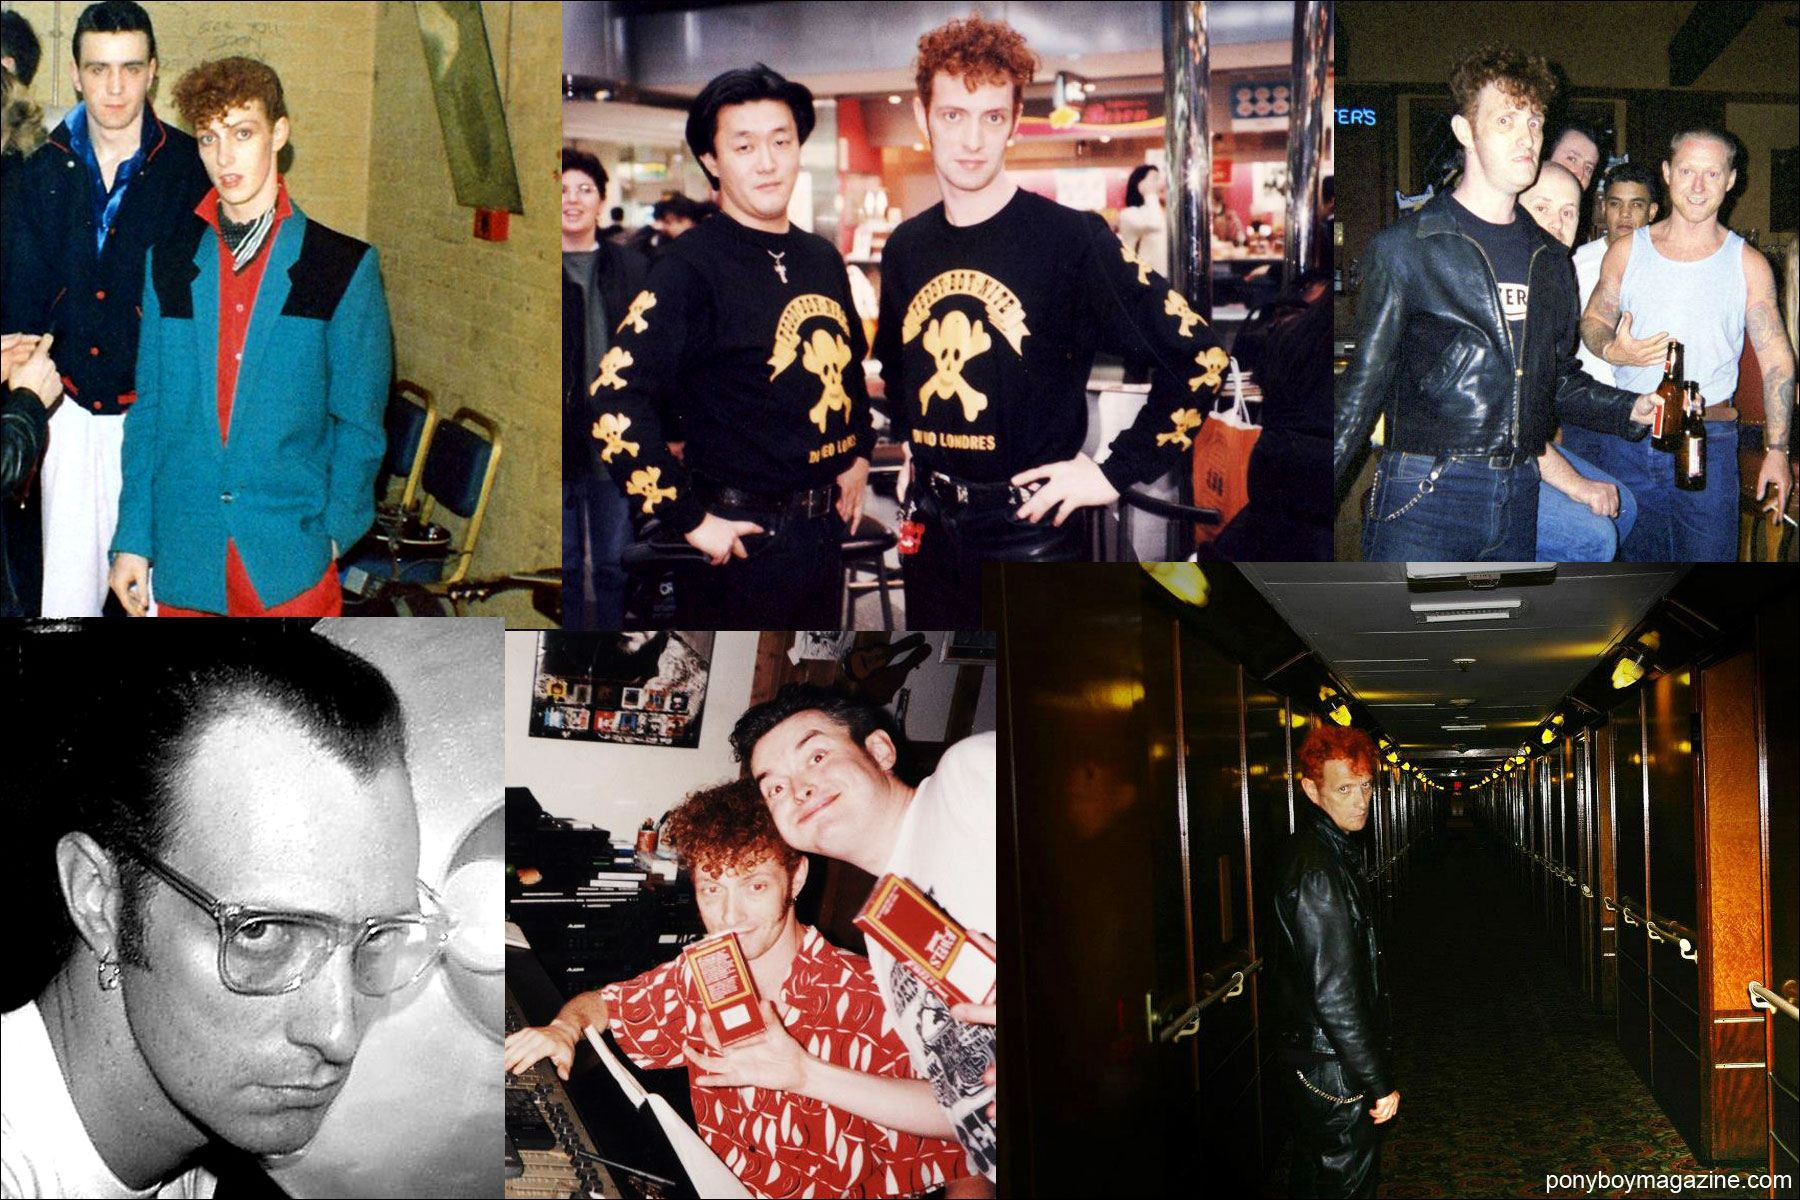 Assorted snapshots of Tim Polecat, lead singer for UK rockabilly band Polecats. Ponyboy Magazine NY.